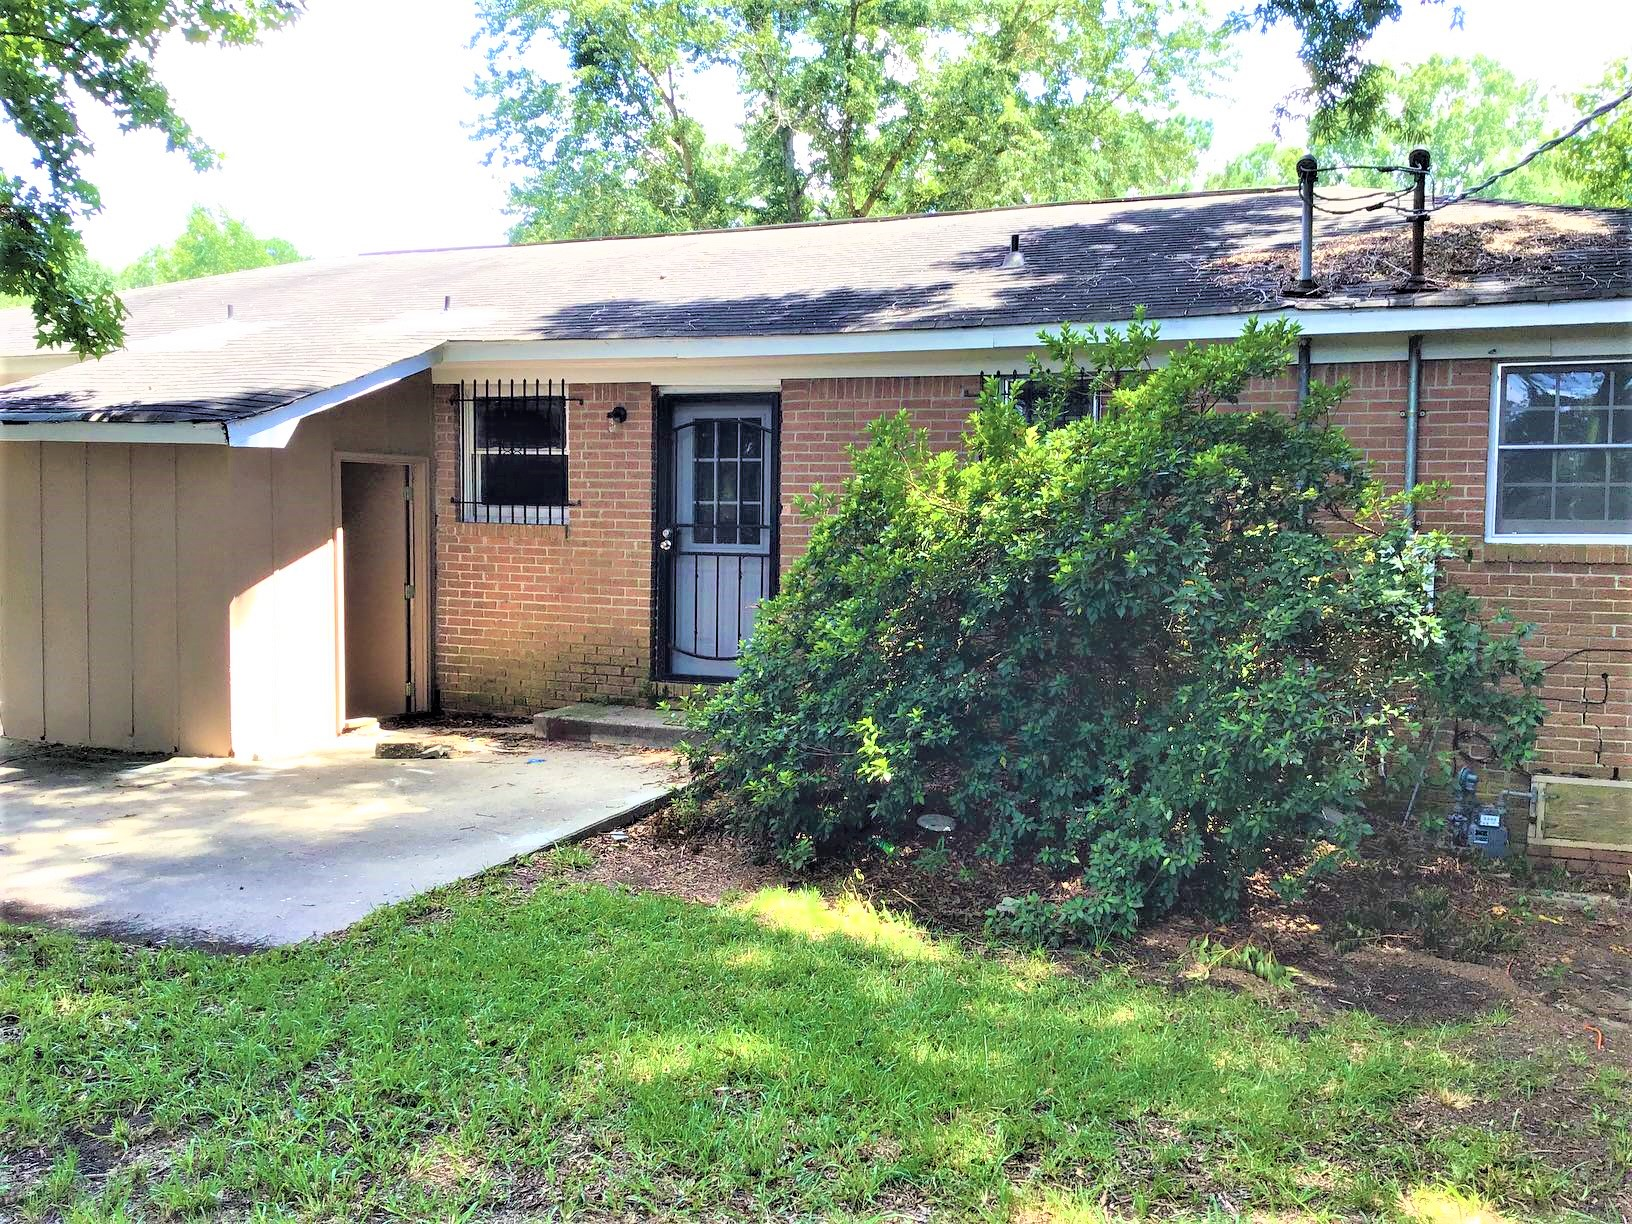 2117 - B Apple Valley Road, Columbia, South Carolina 29210, 2 Bedrooms Bedrooms, ,1 BathroomBathrooms,Apartment,For Rent,Apple Valley Road,1396